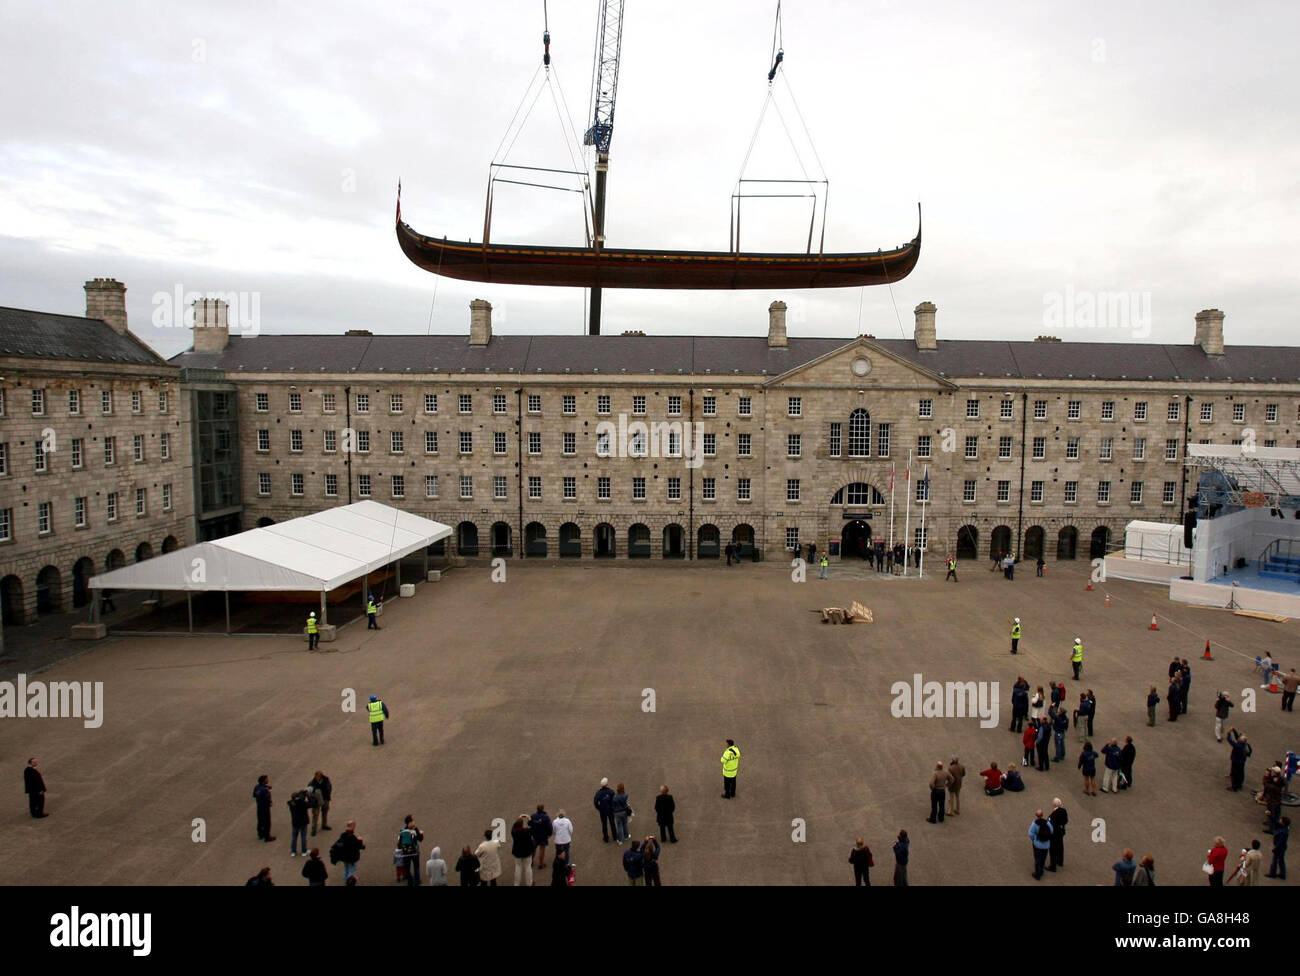 Viking ship lifted into museum. - Stock Image